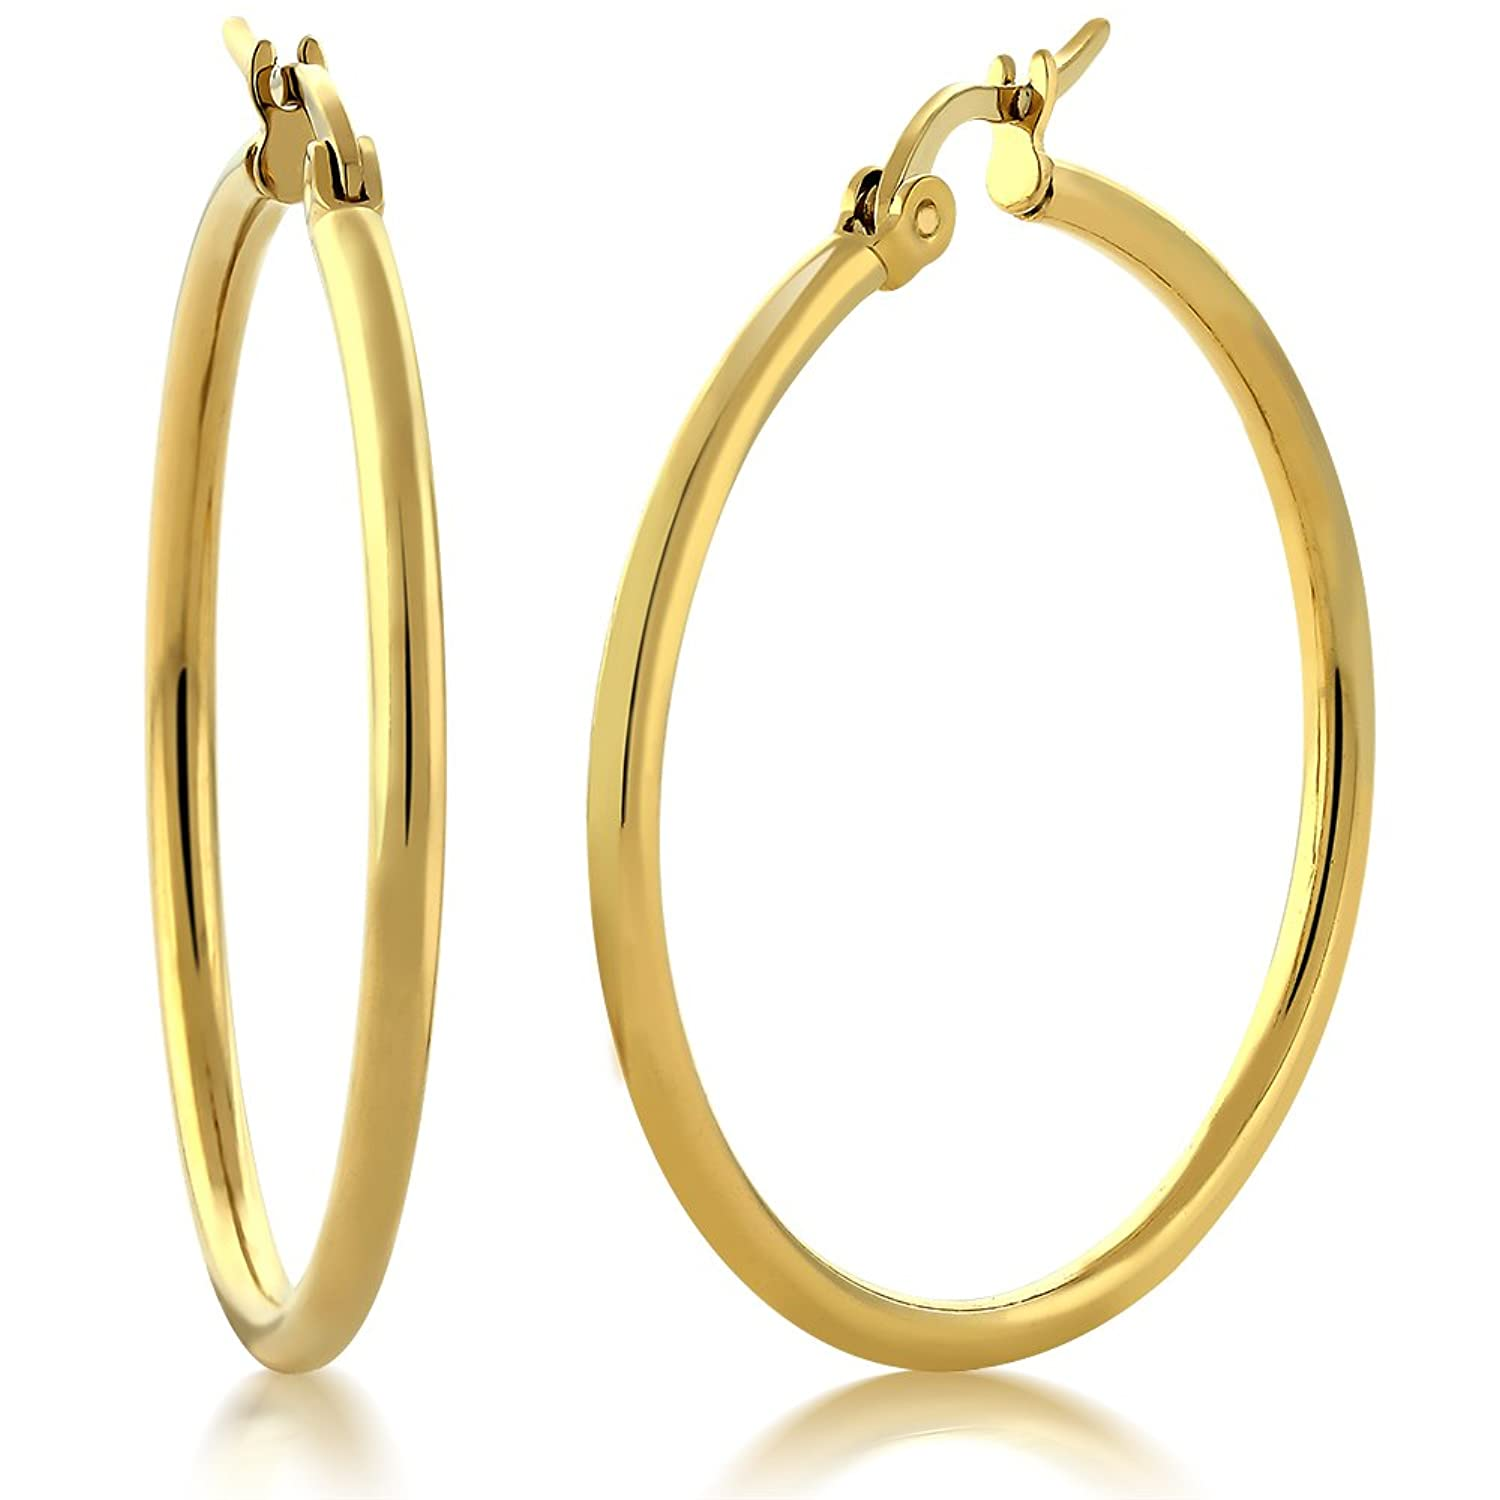 tone nadia earrings arabesque gold dajani two goldplated plated